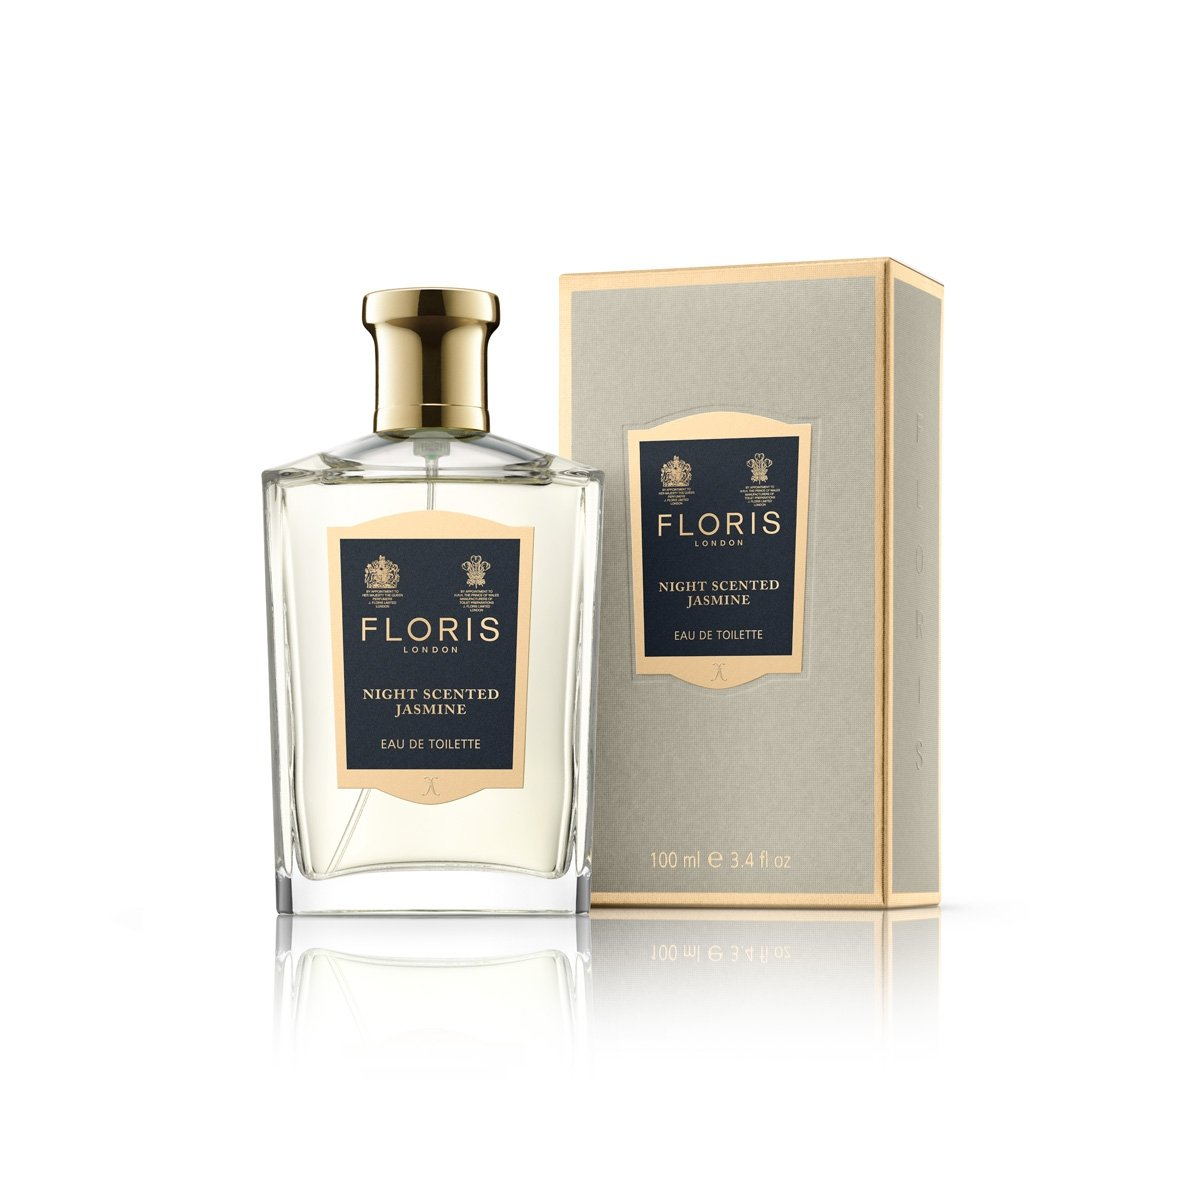 Night Scented Jasmine - Eau de Toilette 100ml